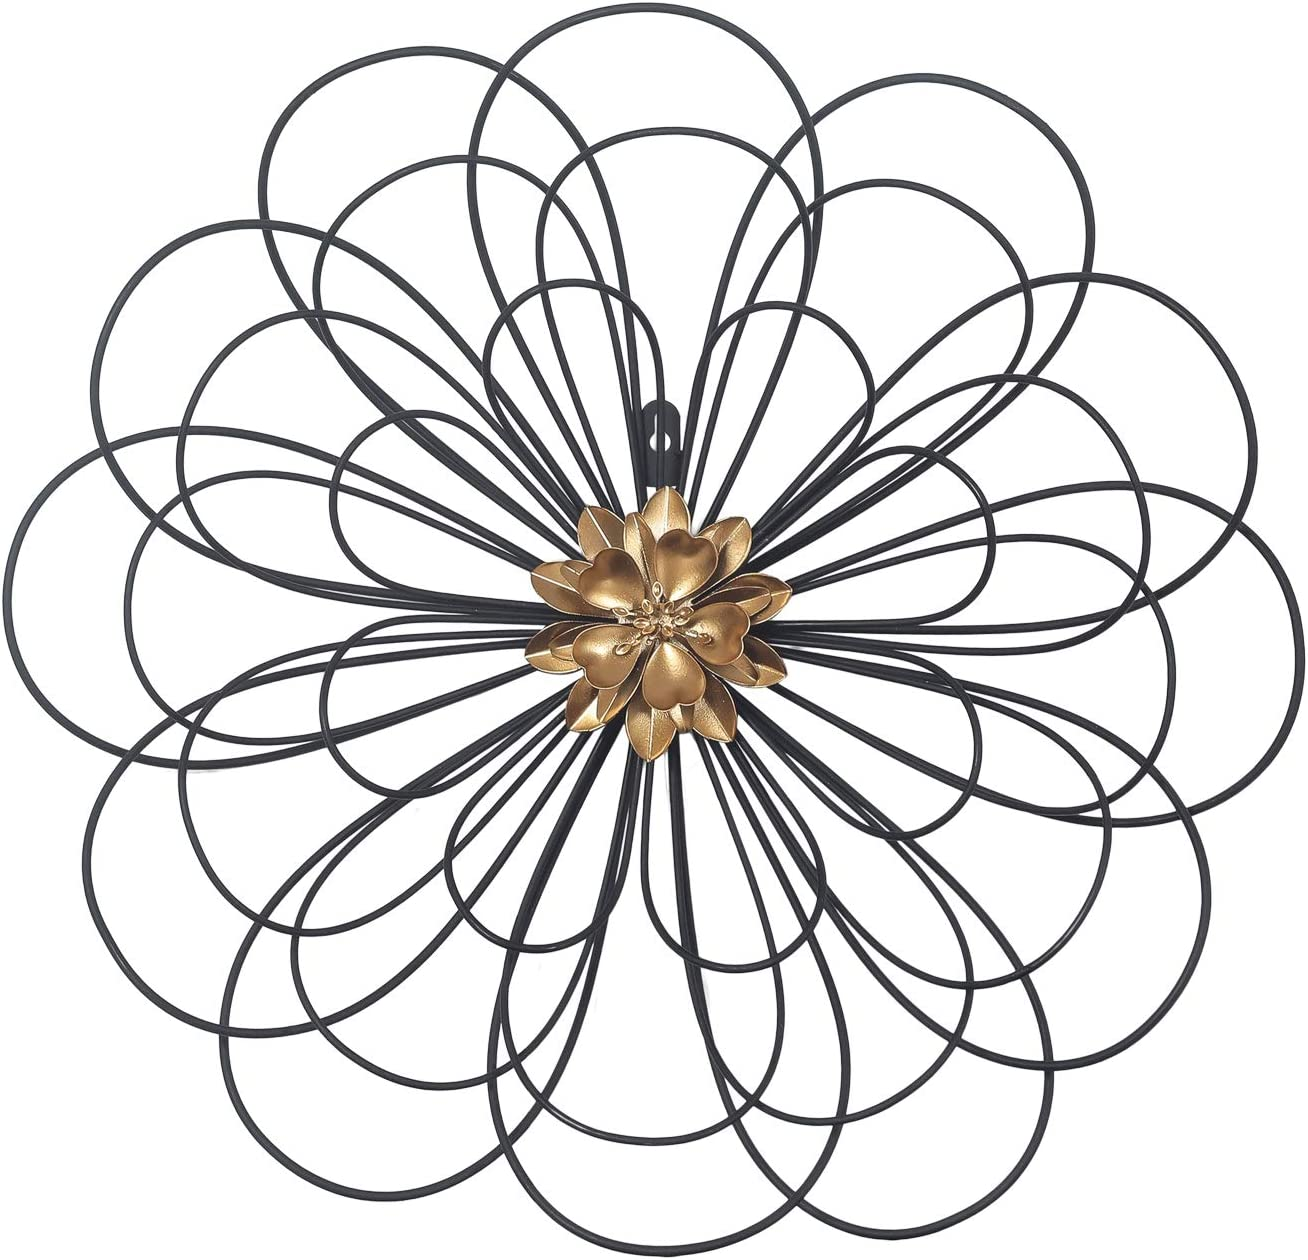 Adeco Black Wire Metal Flower Wall Decor, Home Accent Wall Hanging Art for Nature Home Art Decoration & Kitchen Gifts